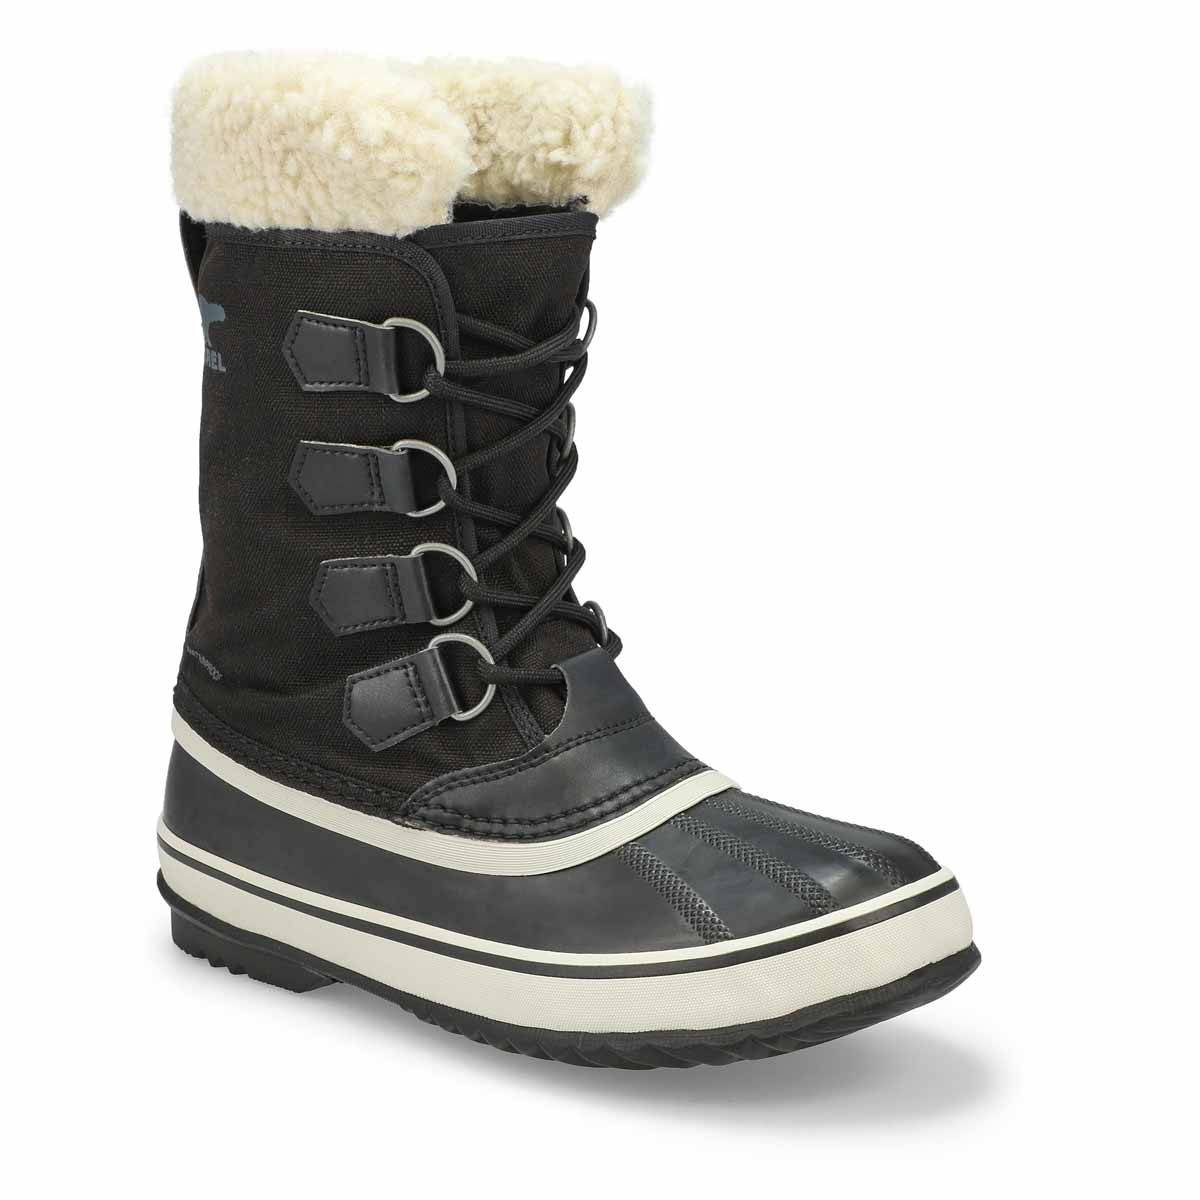 Lds Winter Carnival blk stn wp wntr boot